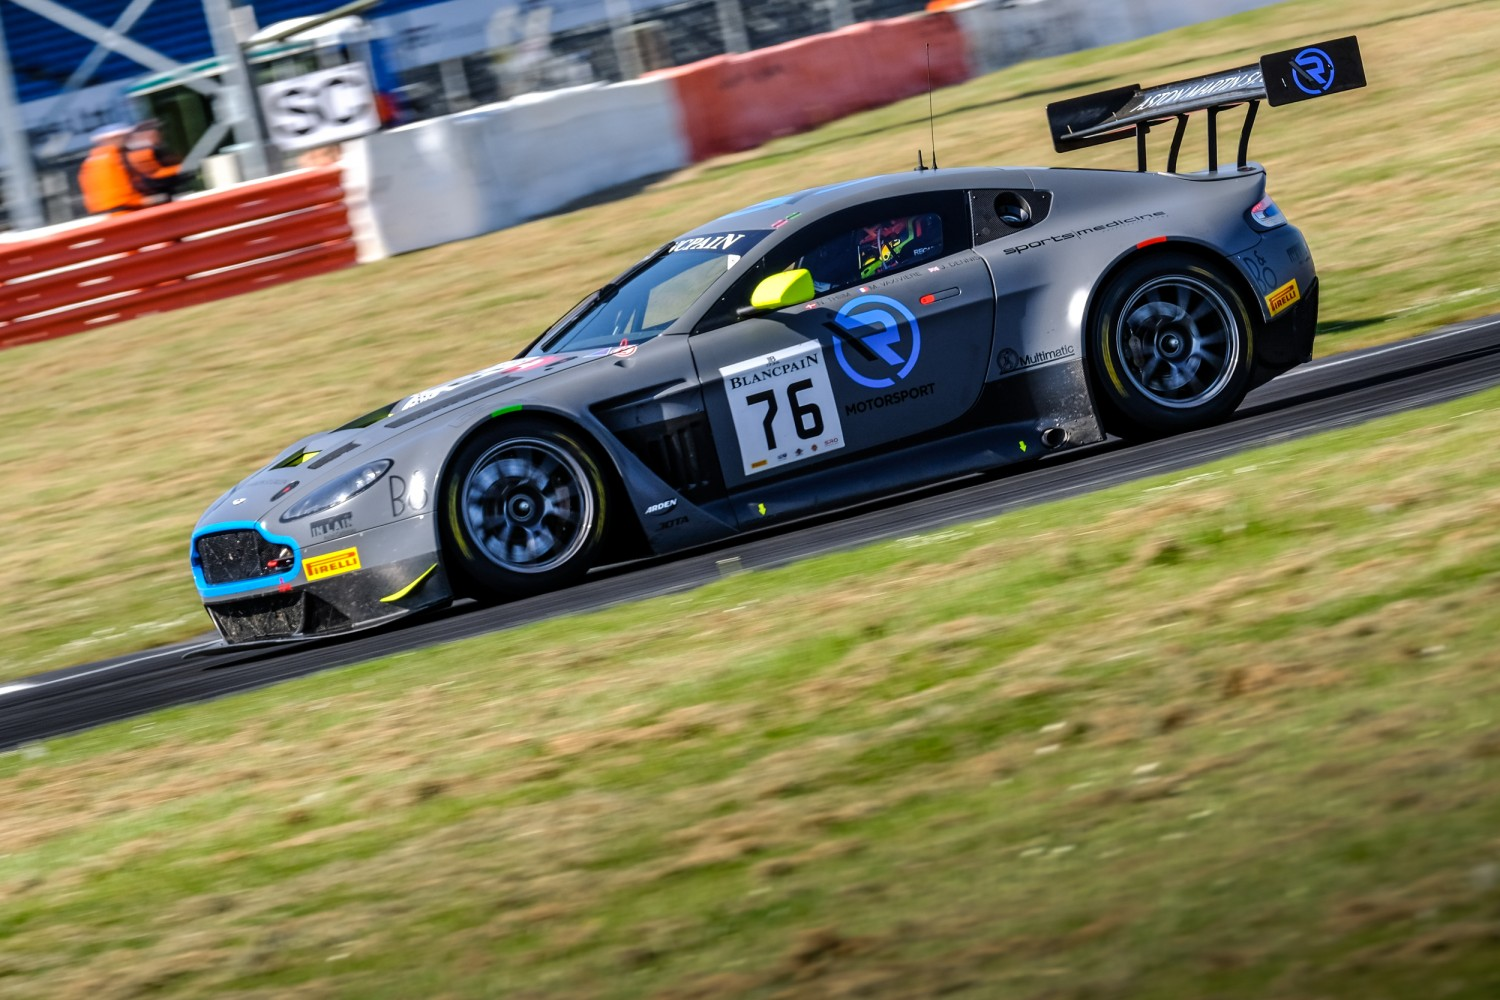 RACB SPORT NATIONAL COURT OF APPEAL RULES ON R-MOTORSPORT SILVERSTONE DISQUALIFICATION